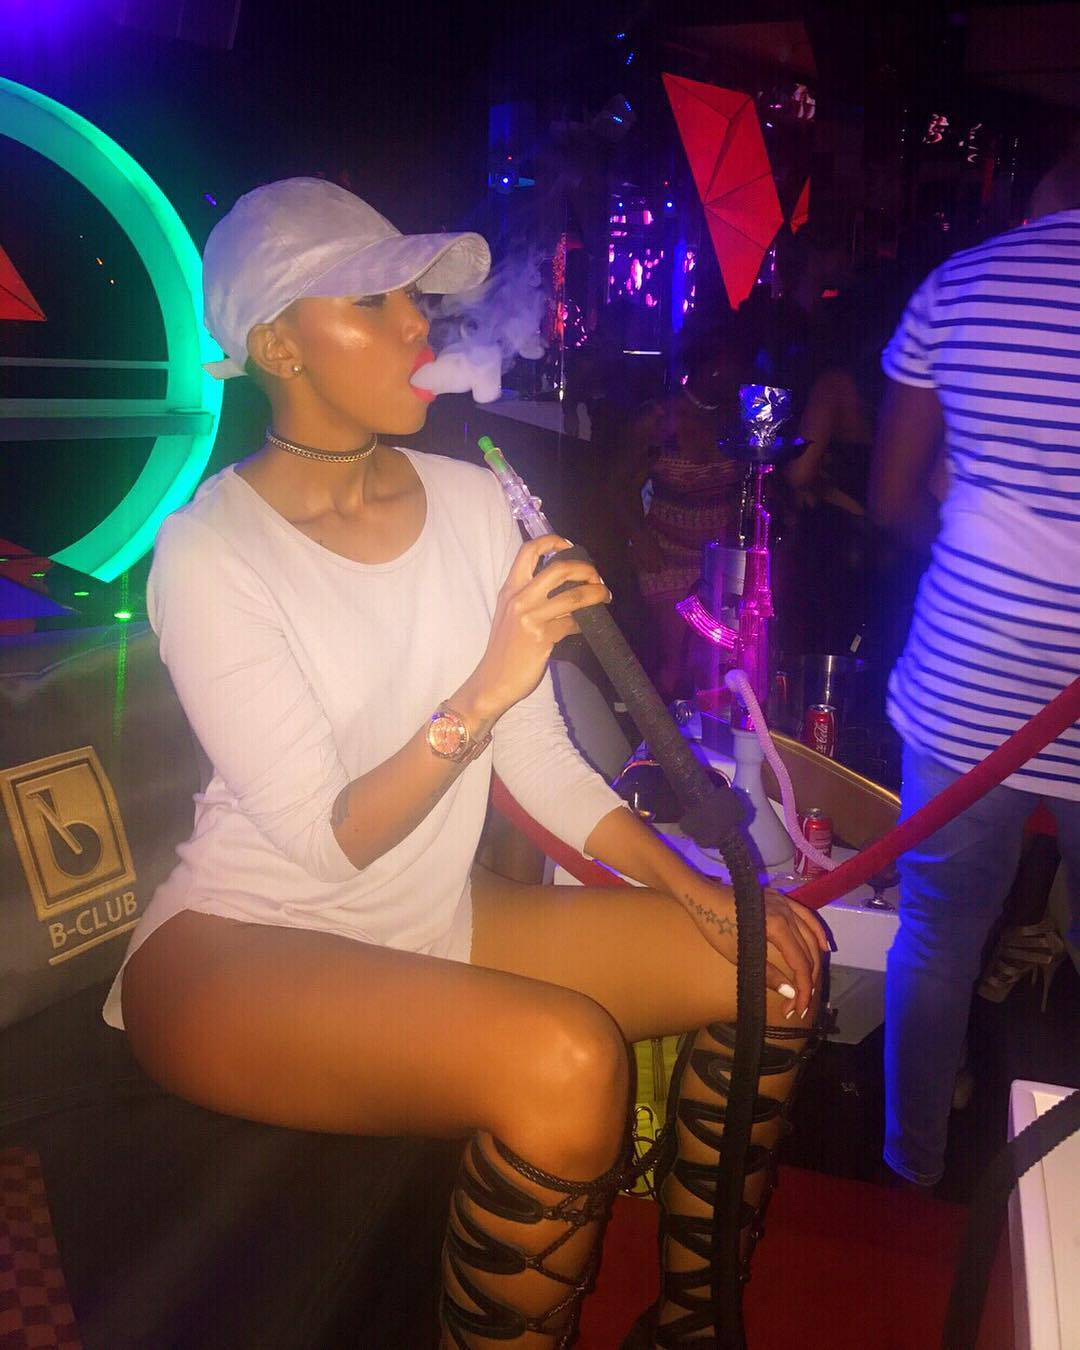 Huddah Monroe smoking shisha at B-Club in Nairobi